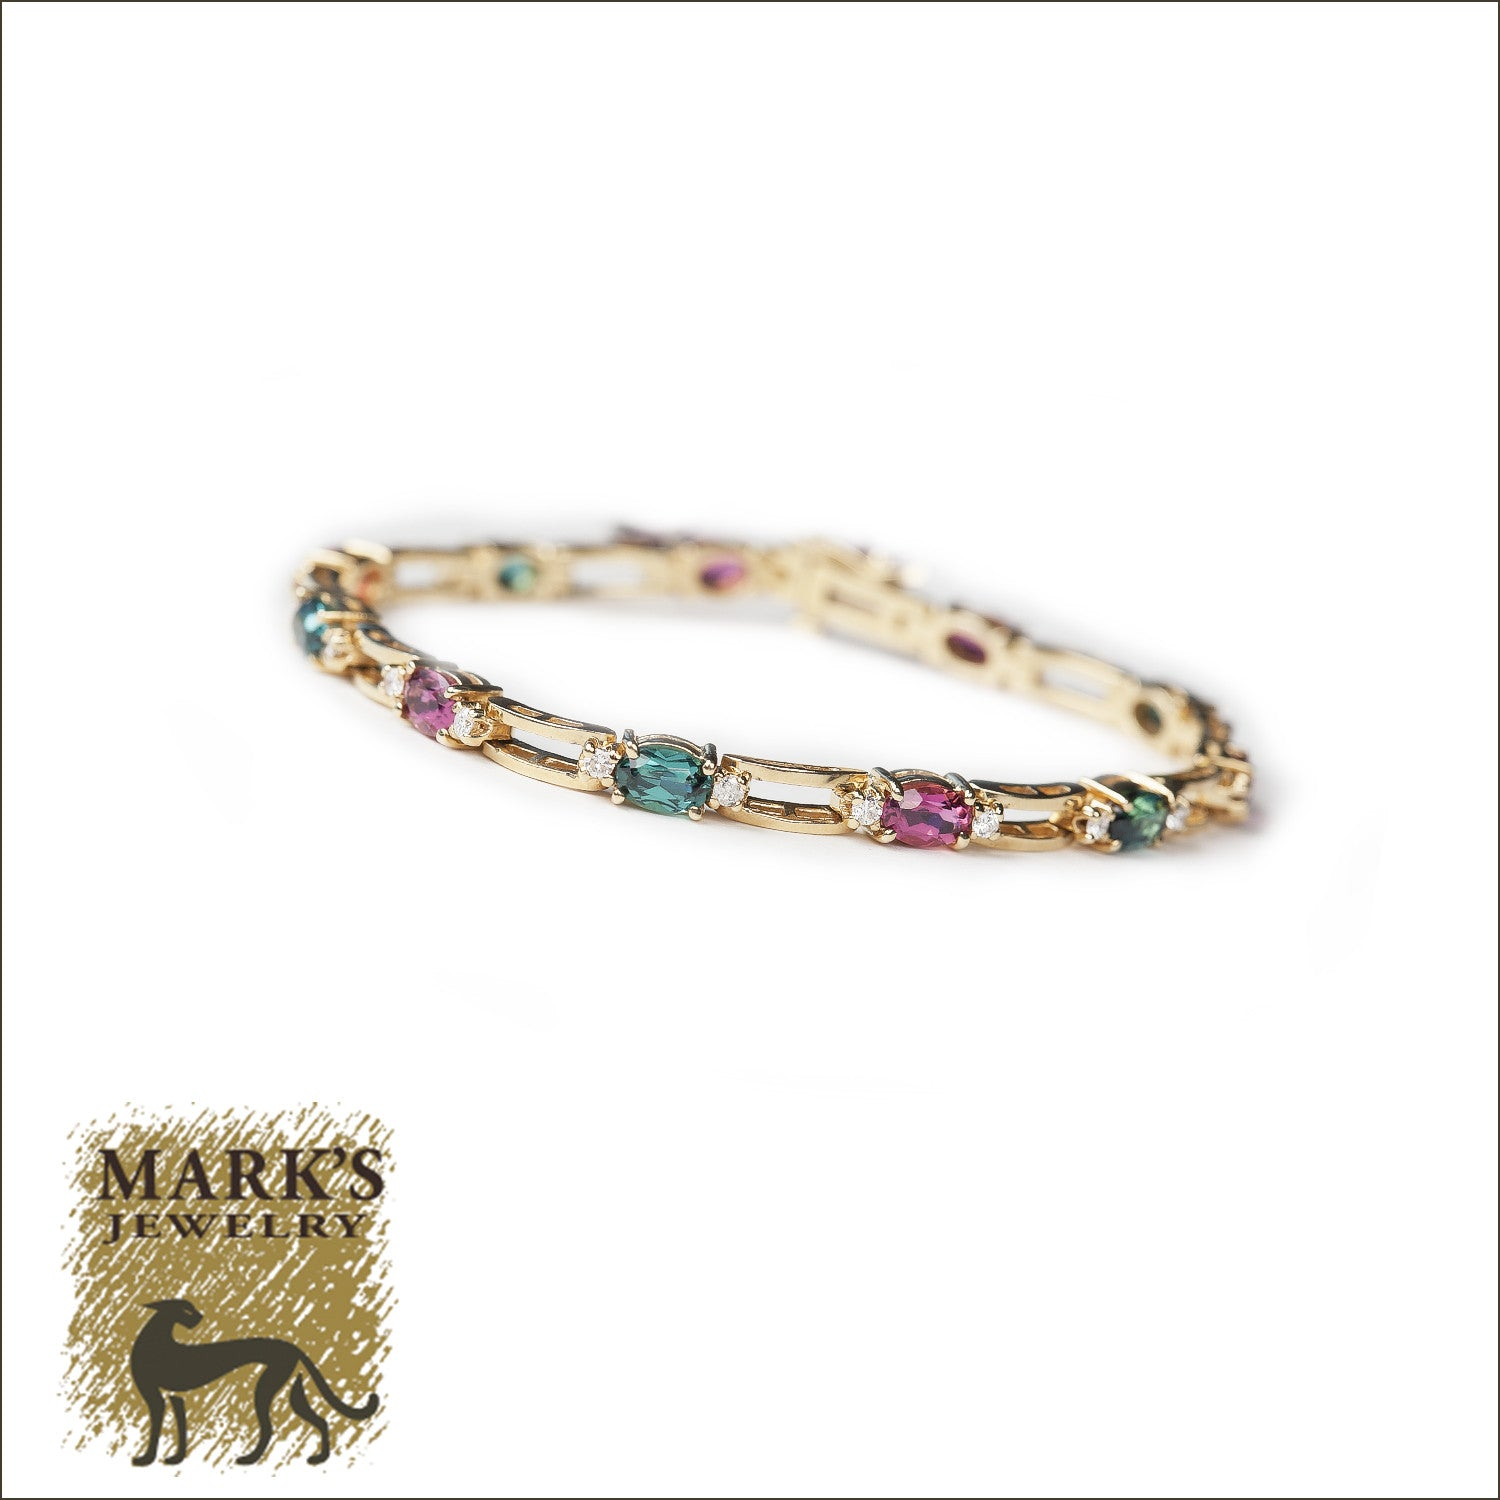 14k Yellow Gold Diamond with Pink & Green Tourmaline Bracelet